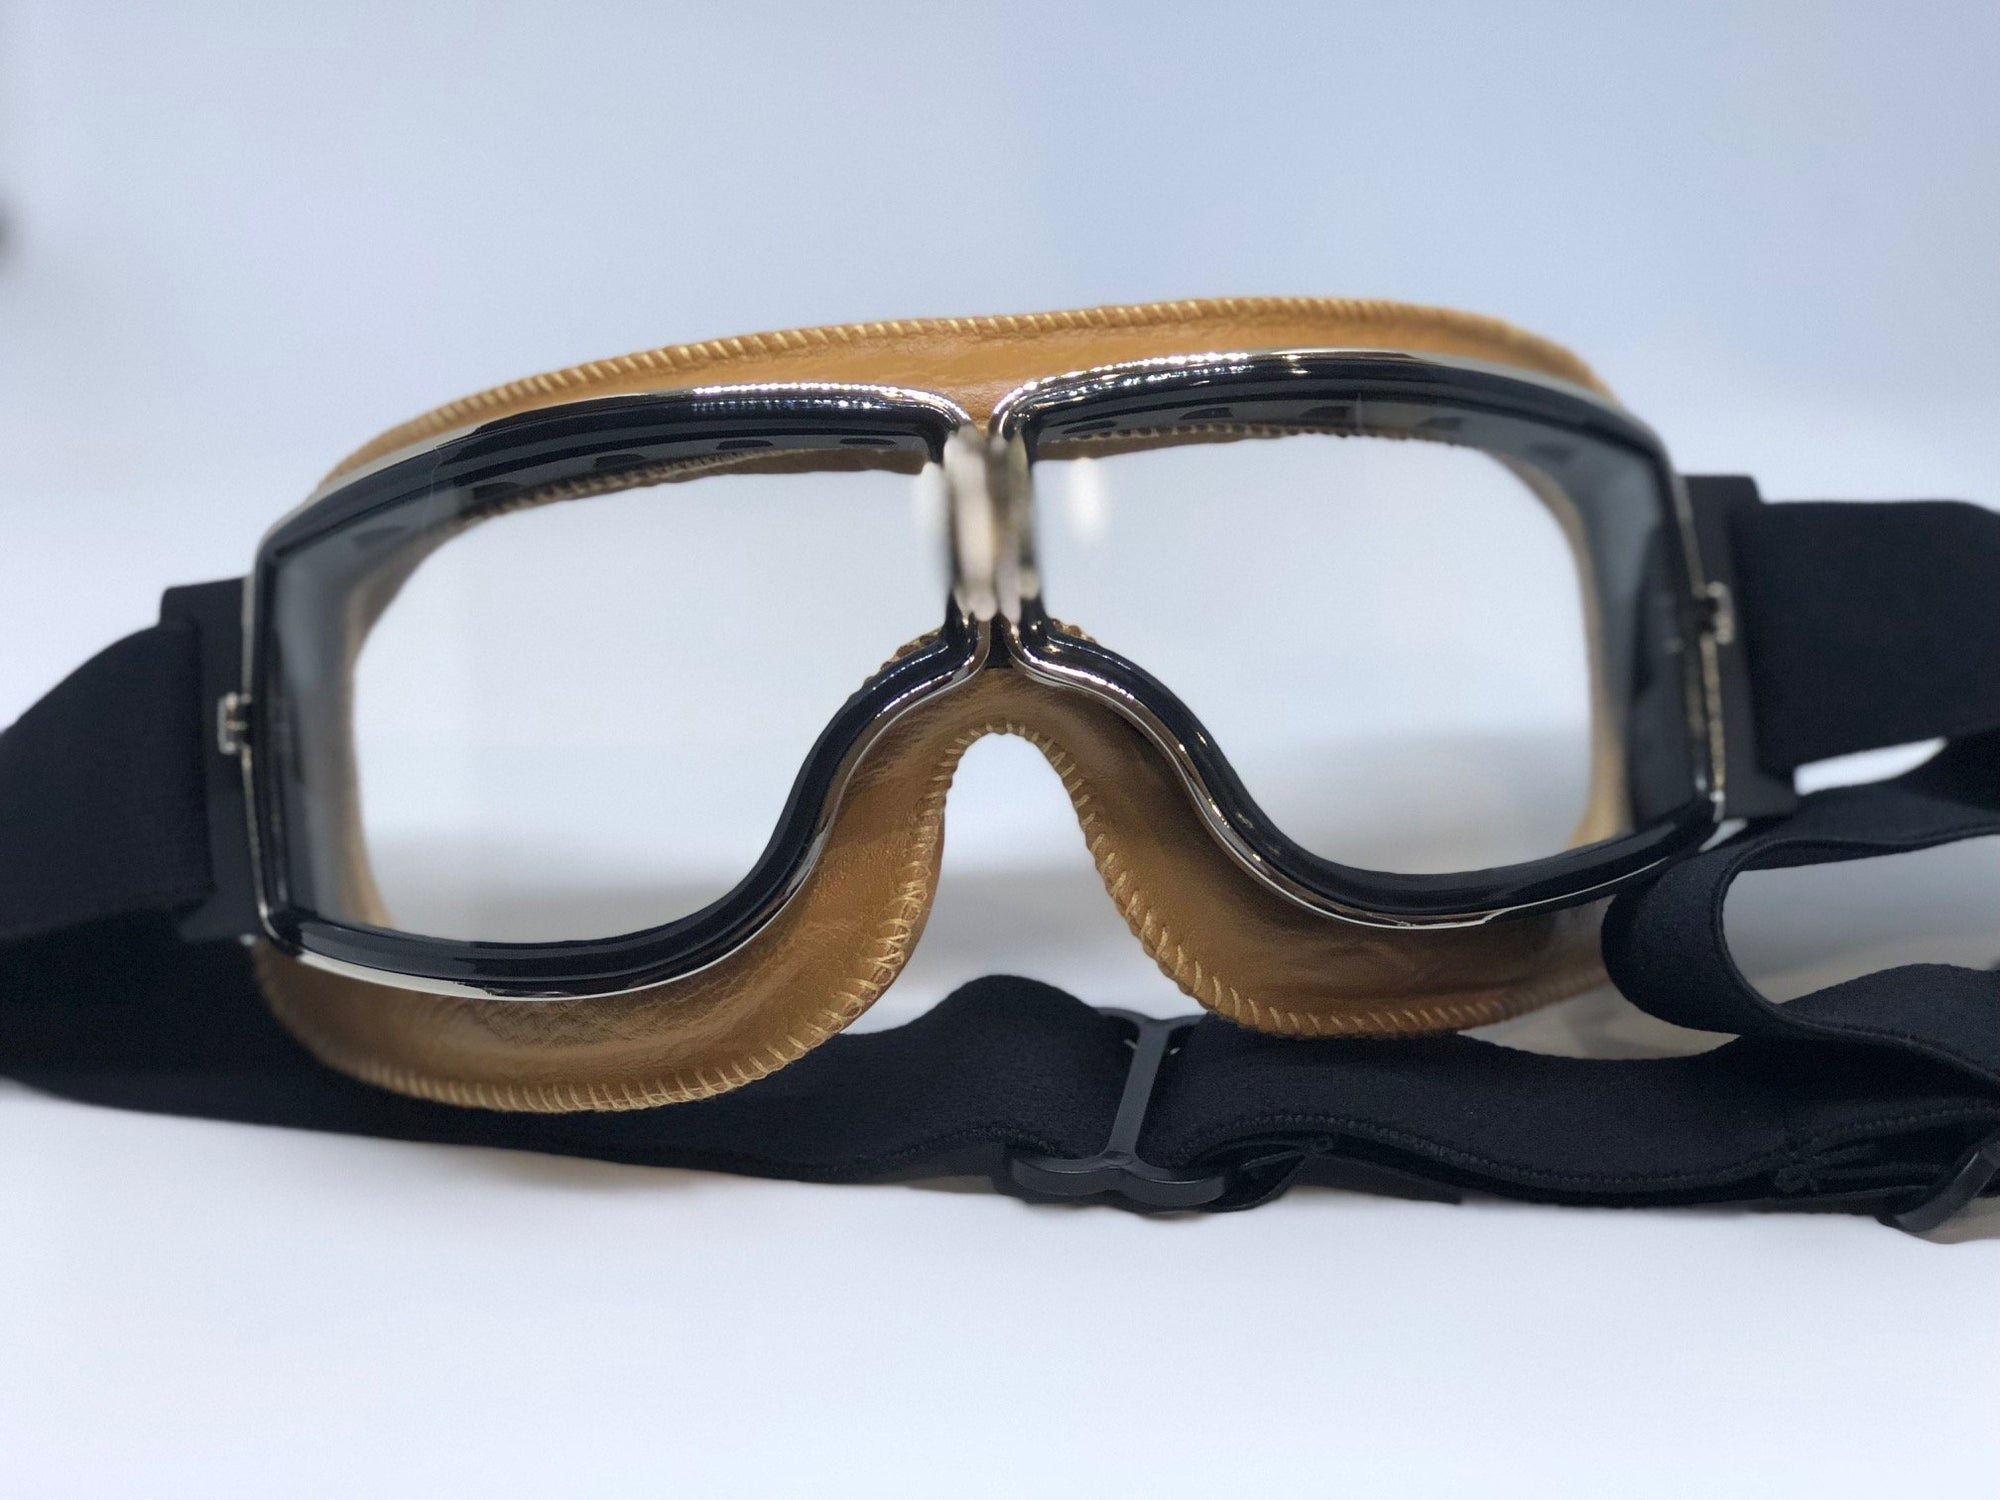 Blackbird - Blackbird Goggles Tan with Clear Lenses - Goggles - Salt Flats Clothing